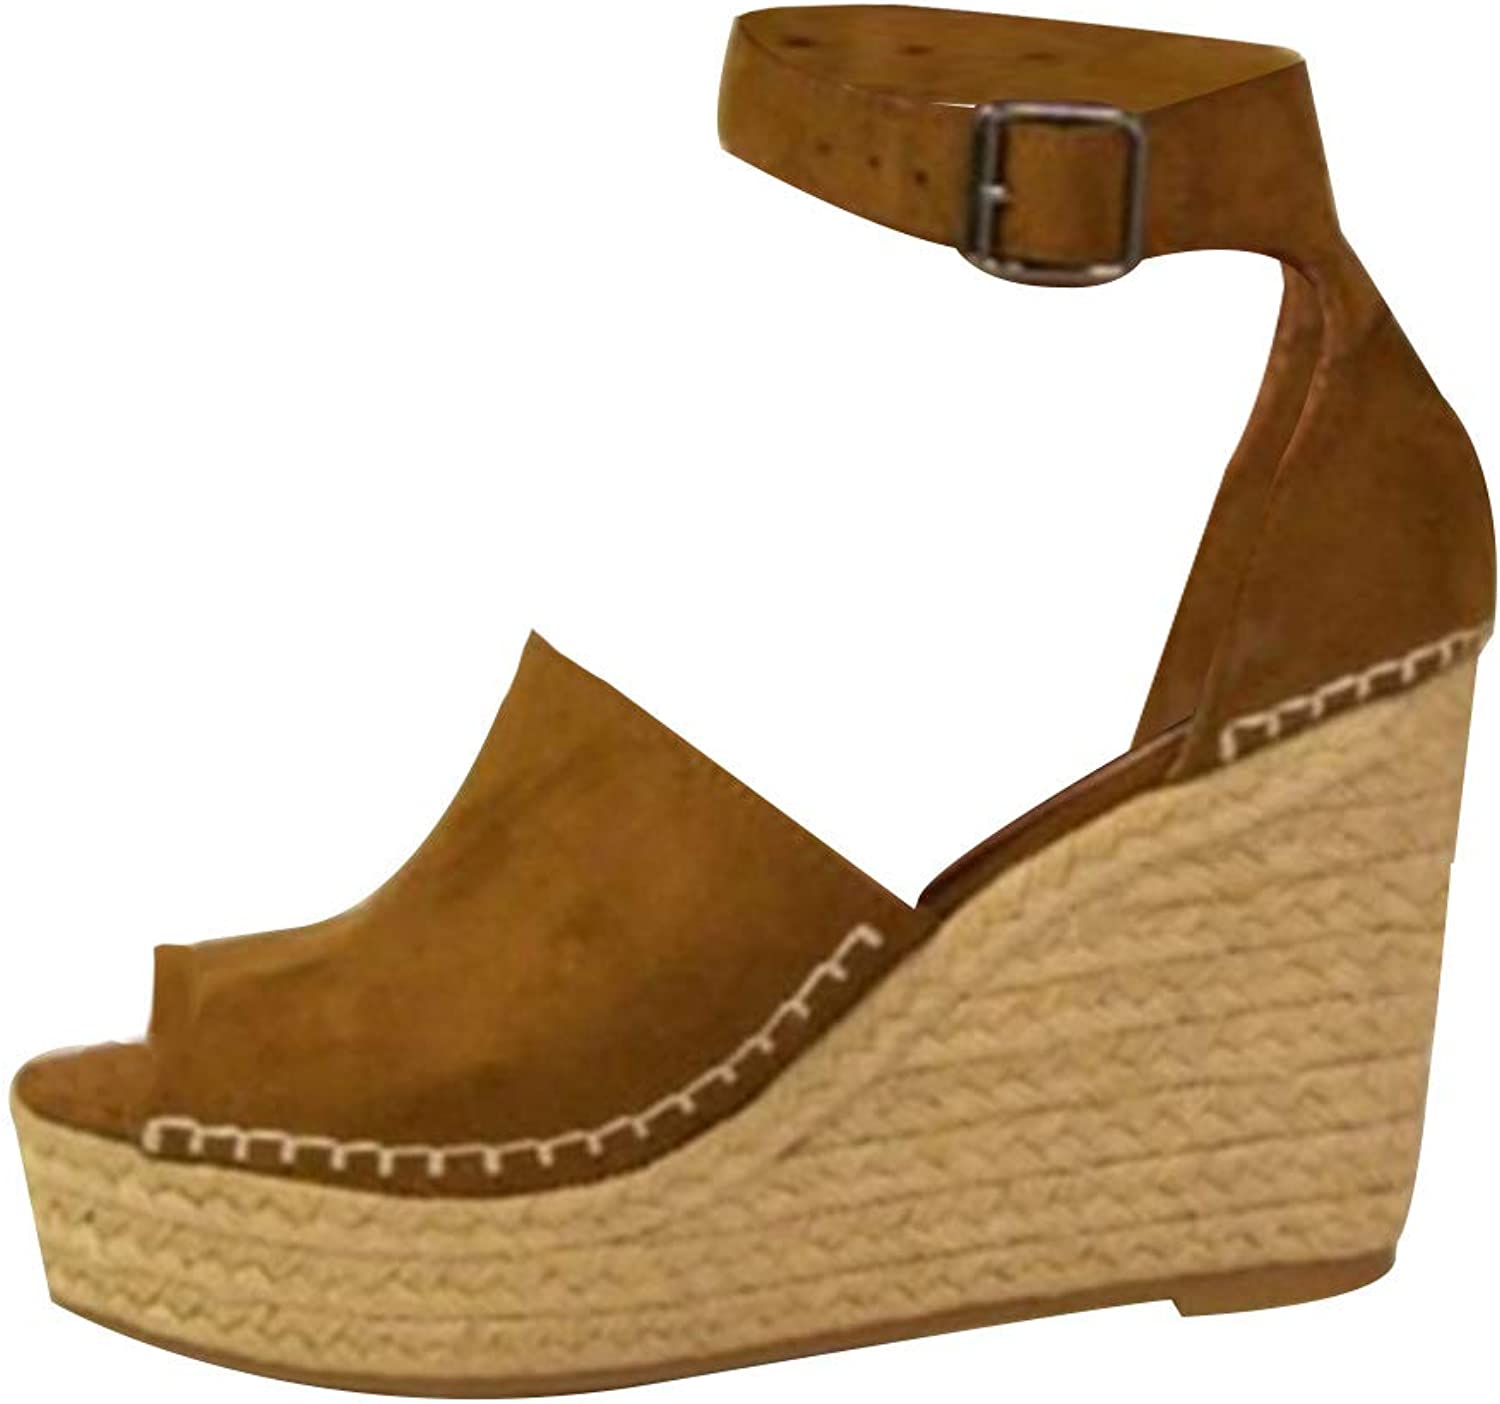 Huicai Ladies Casual Beach shoes Wedge with Open Toe Lightweight Dress Sandals